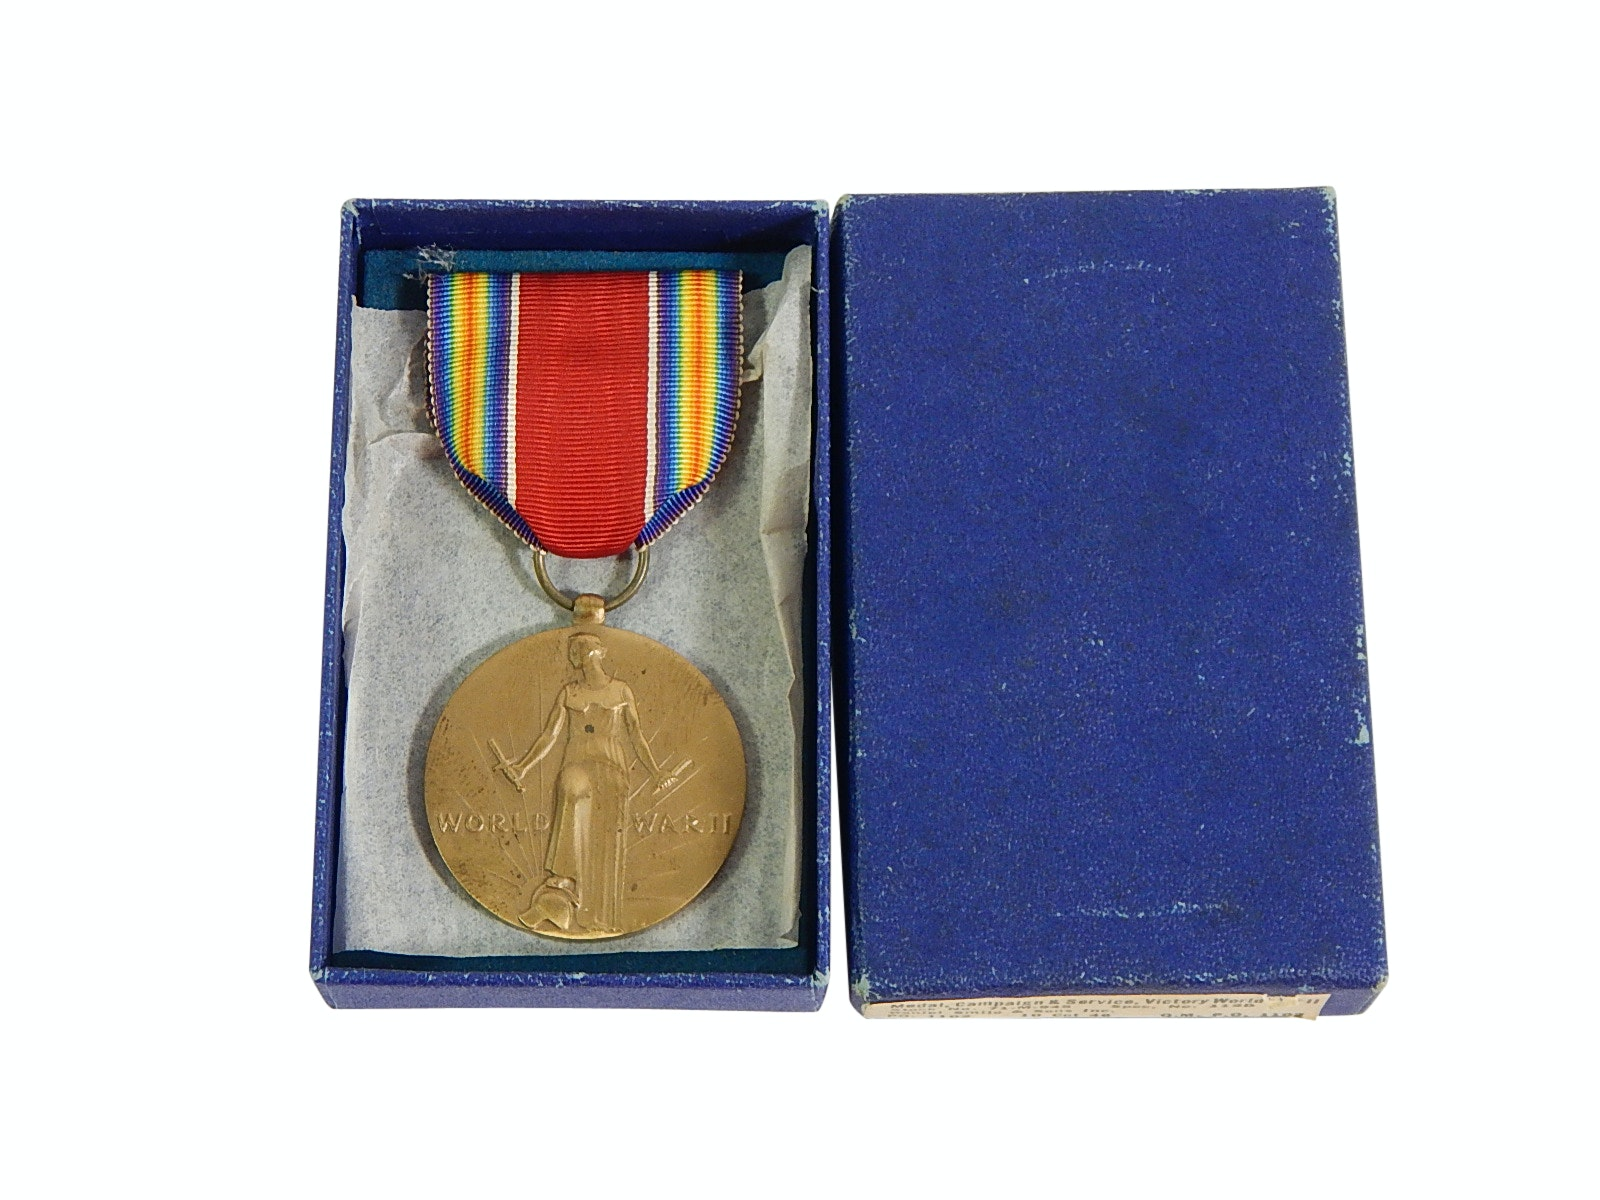 WWII Victory Medal and Ribbon in Original Presentation Box